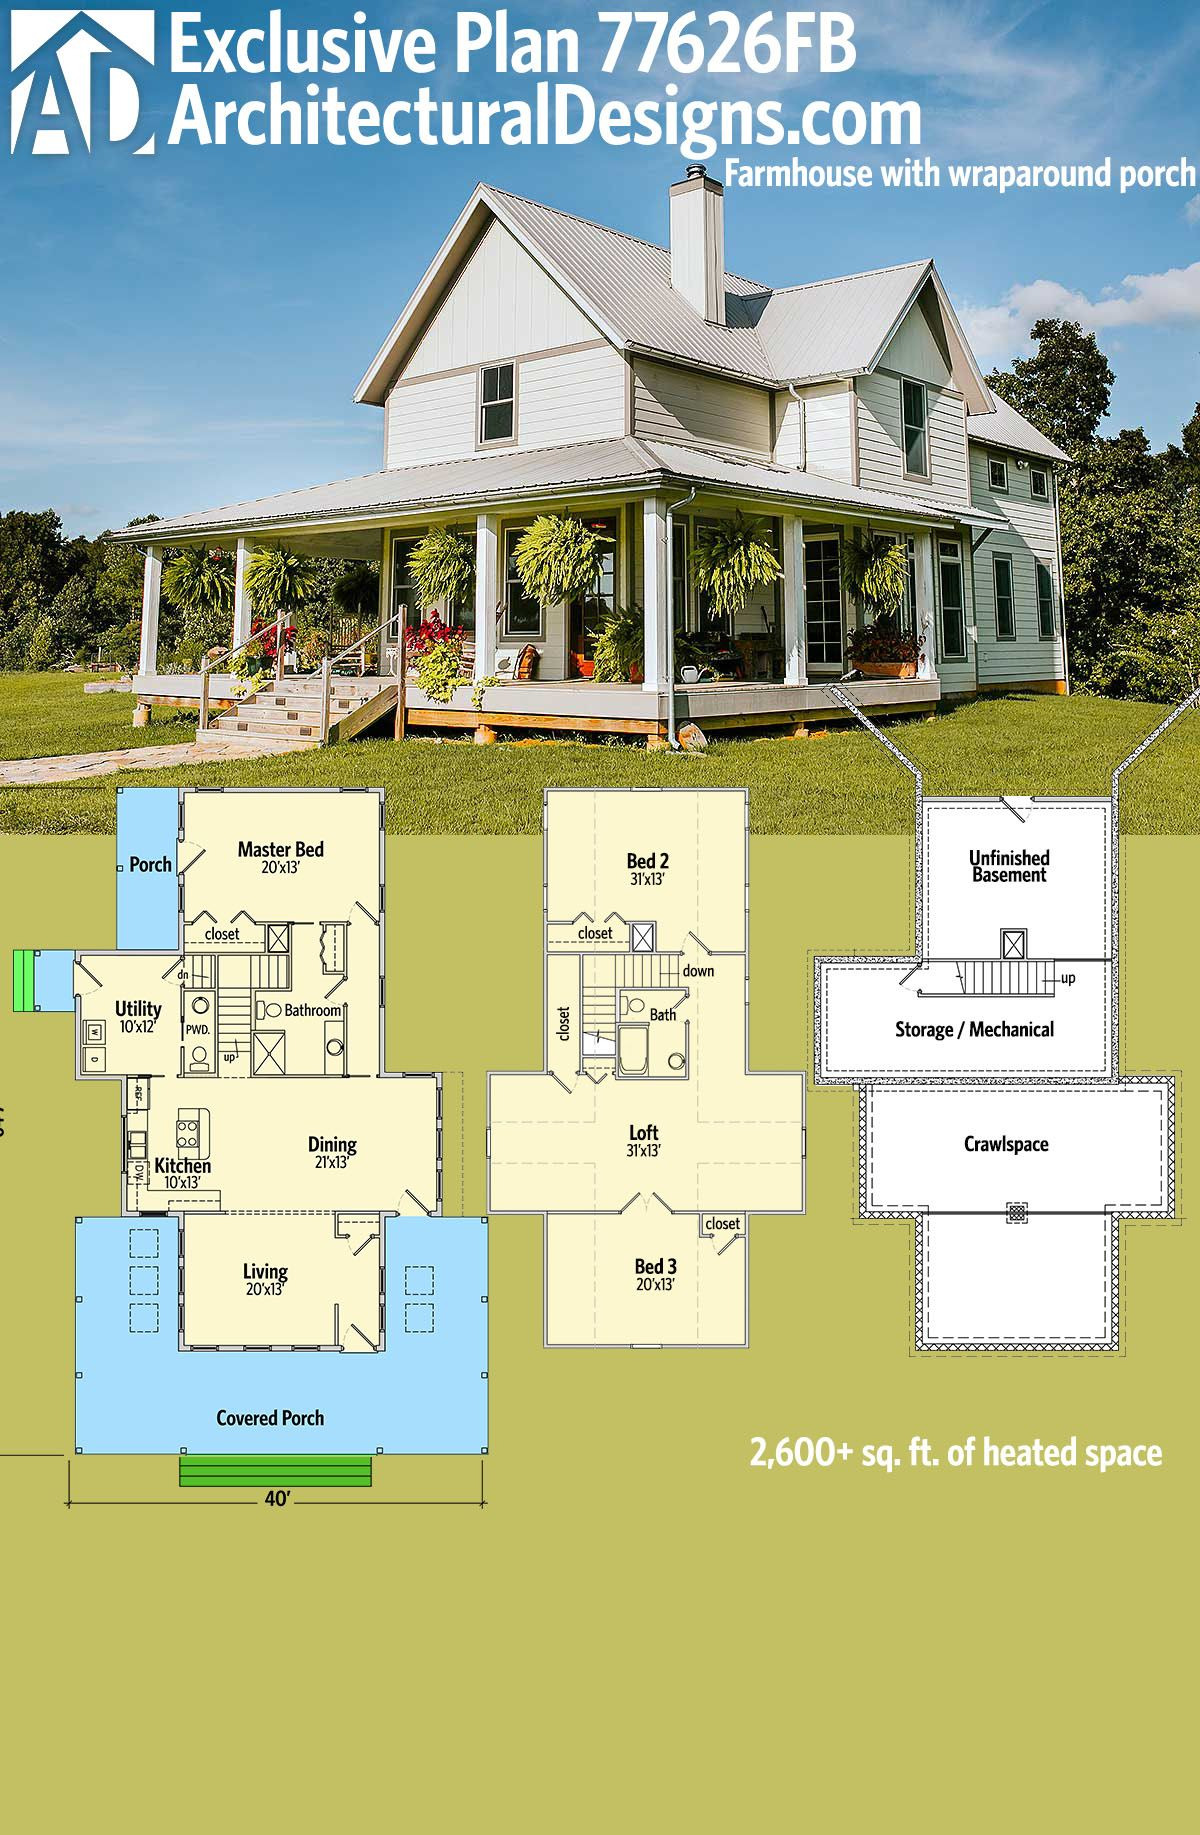 House Plans with Wrap Around Porches 1 Story Fresh Plan Fb Exclusive 3 Bed Farmhouse Plan with Wrap